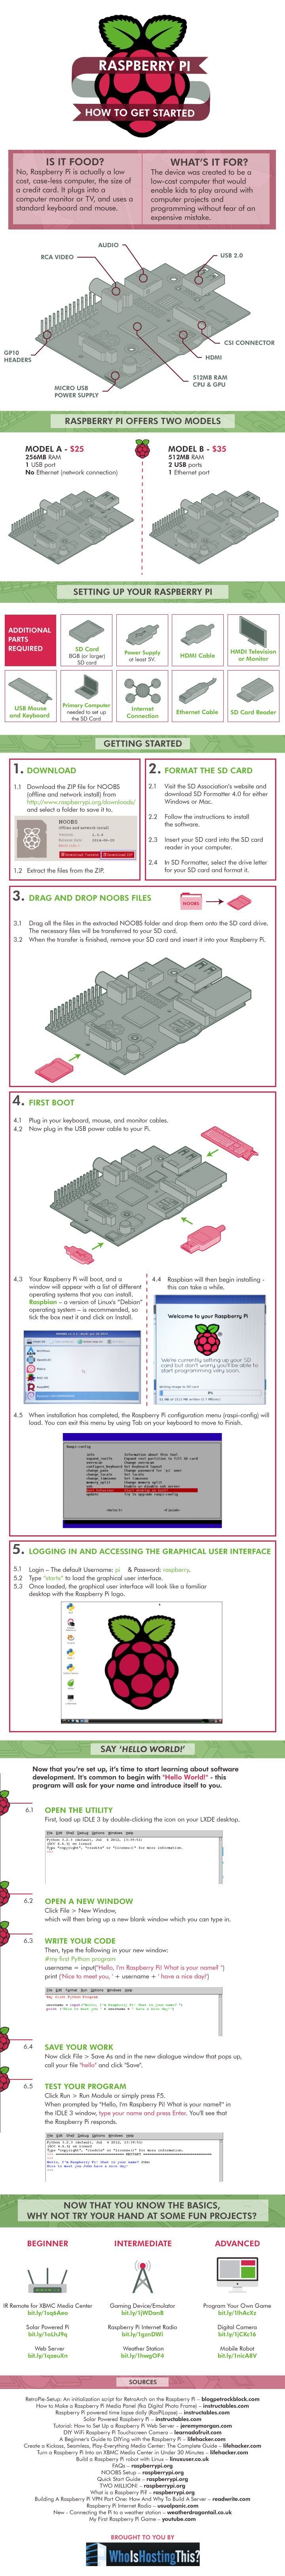 Raspberry Pi How To Get Started In 2018 Useful Pinterest Micro Usb Wiring Diagram 19 Emprendedor The Internets Visual Storytelling Community Explore Share And Discuss Best Stories Internet Has Offer